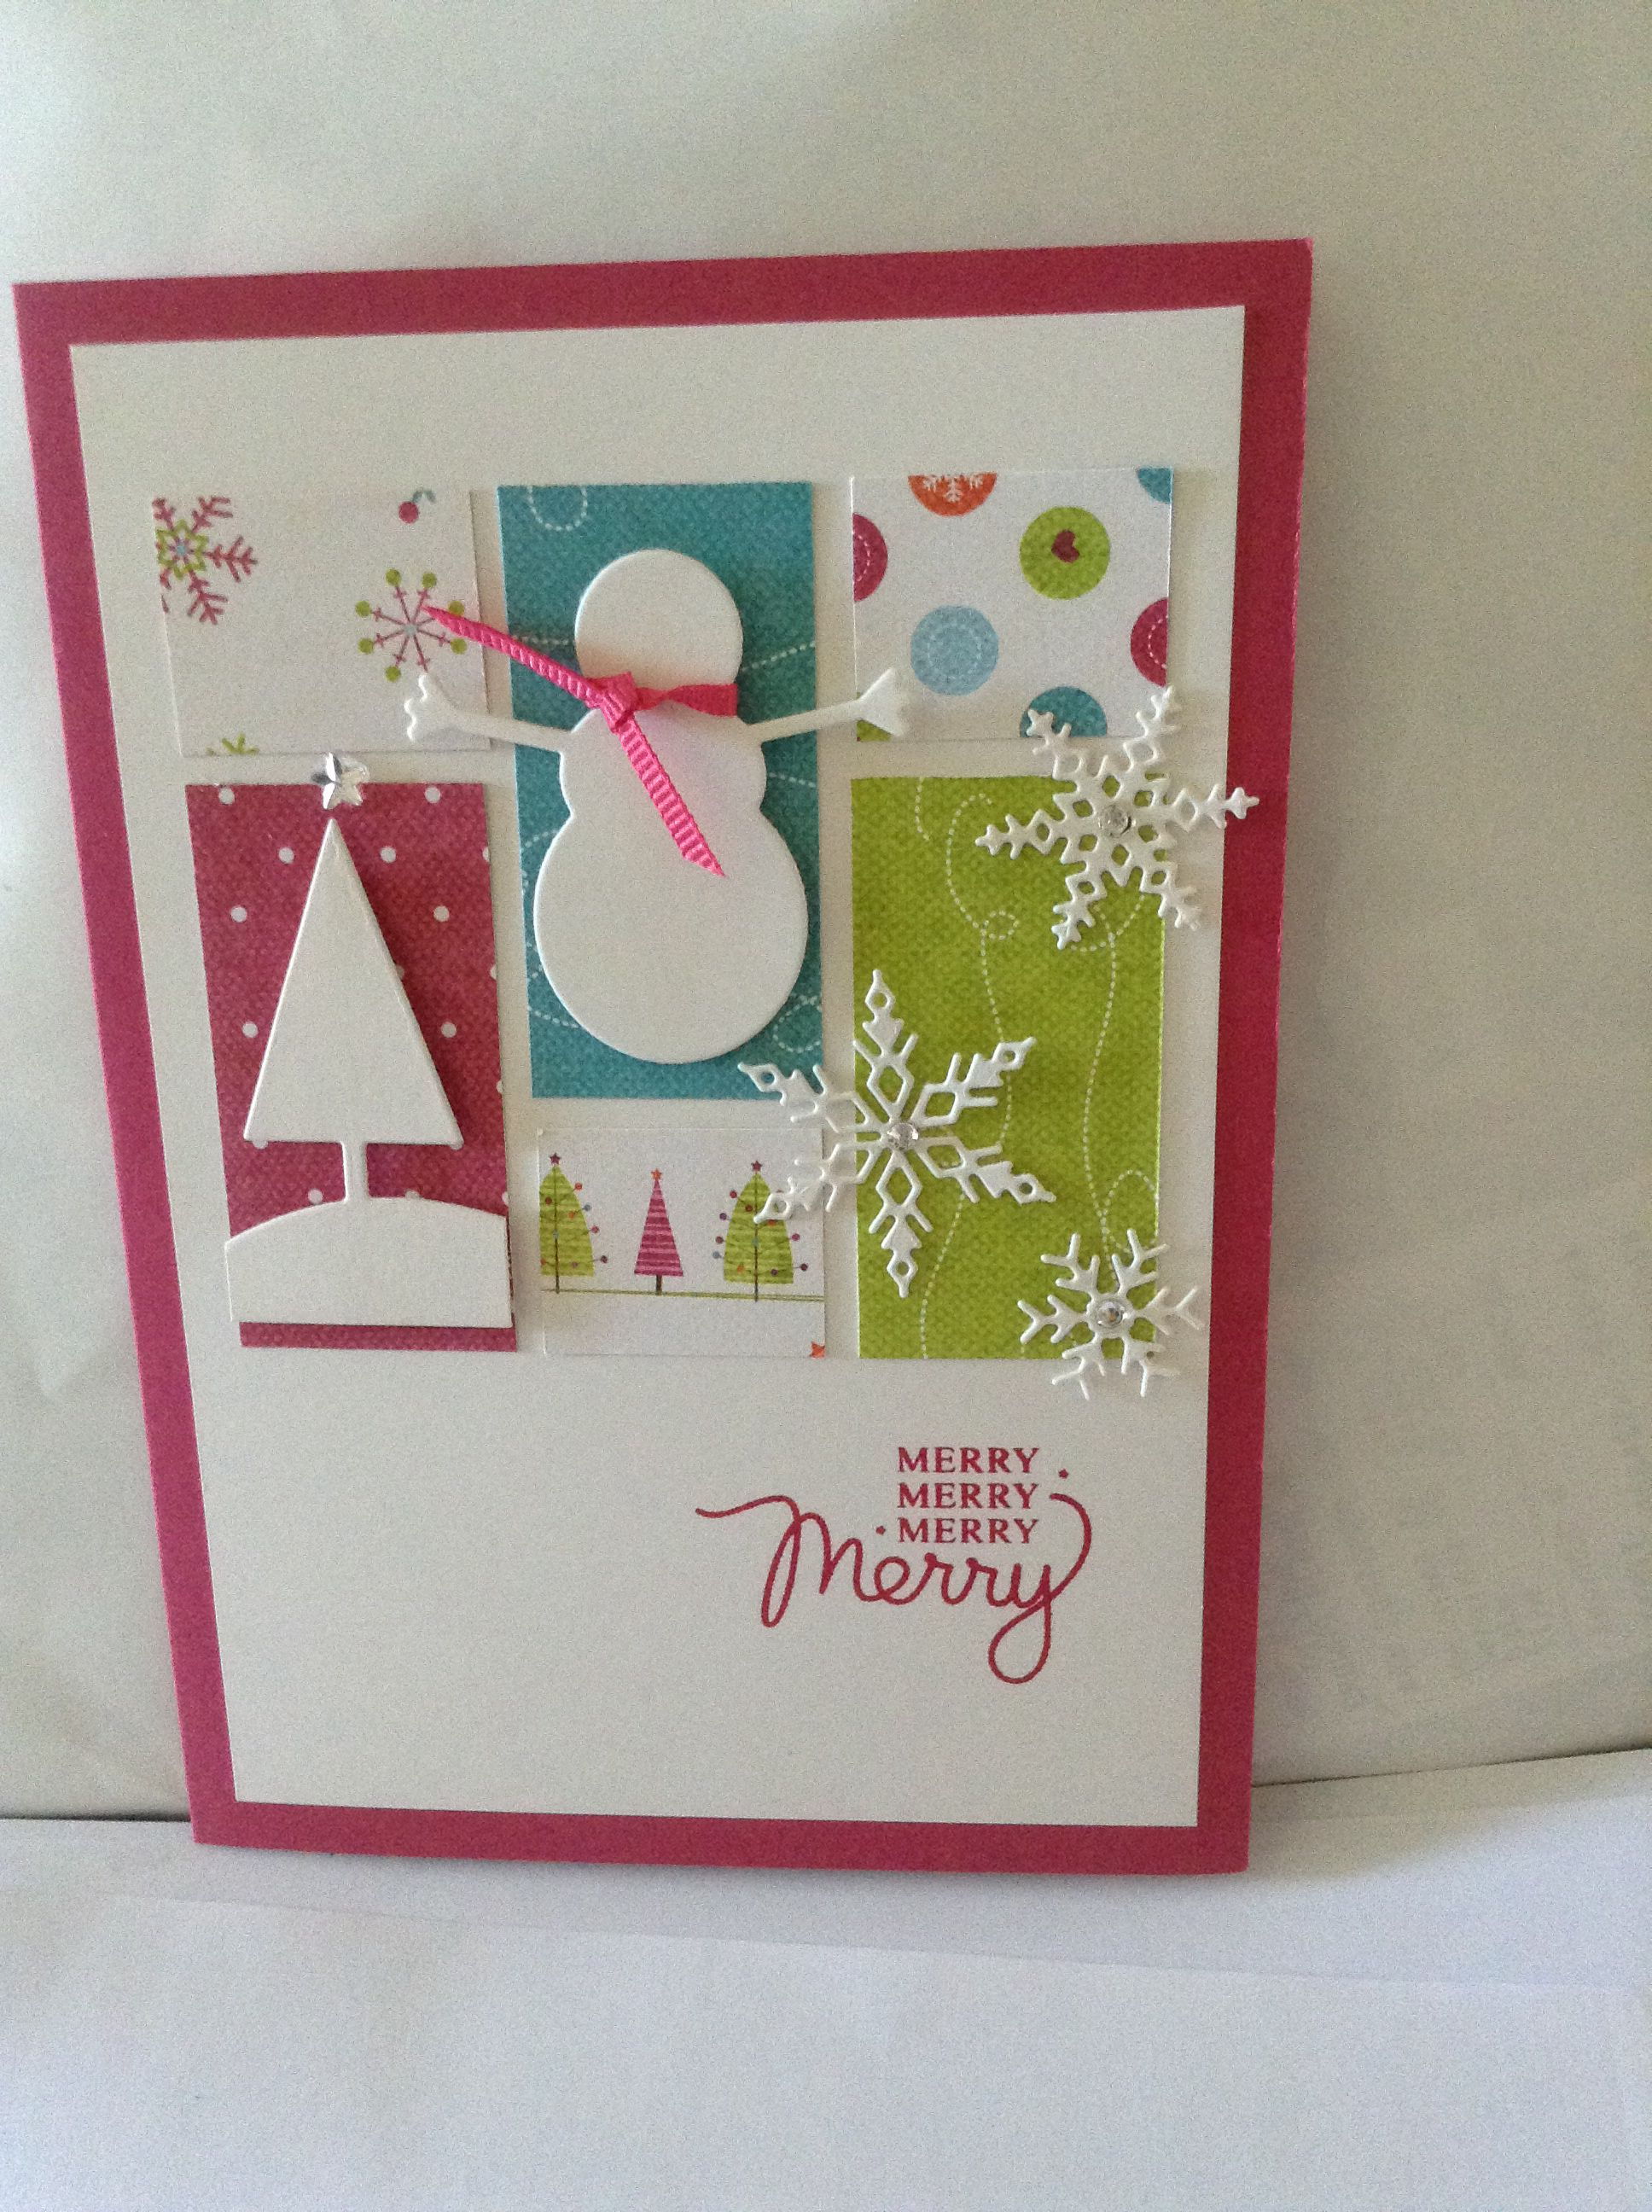 Pin by Jan Dagley on Framelits & Punches | Pinterest | Christmas ...